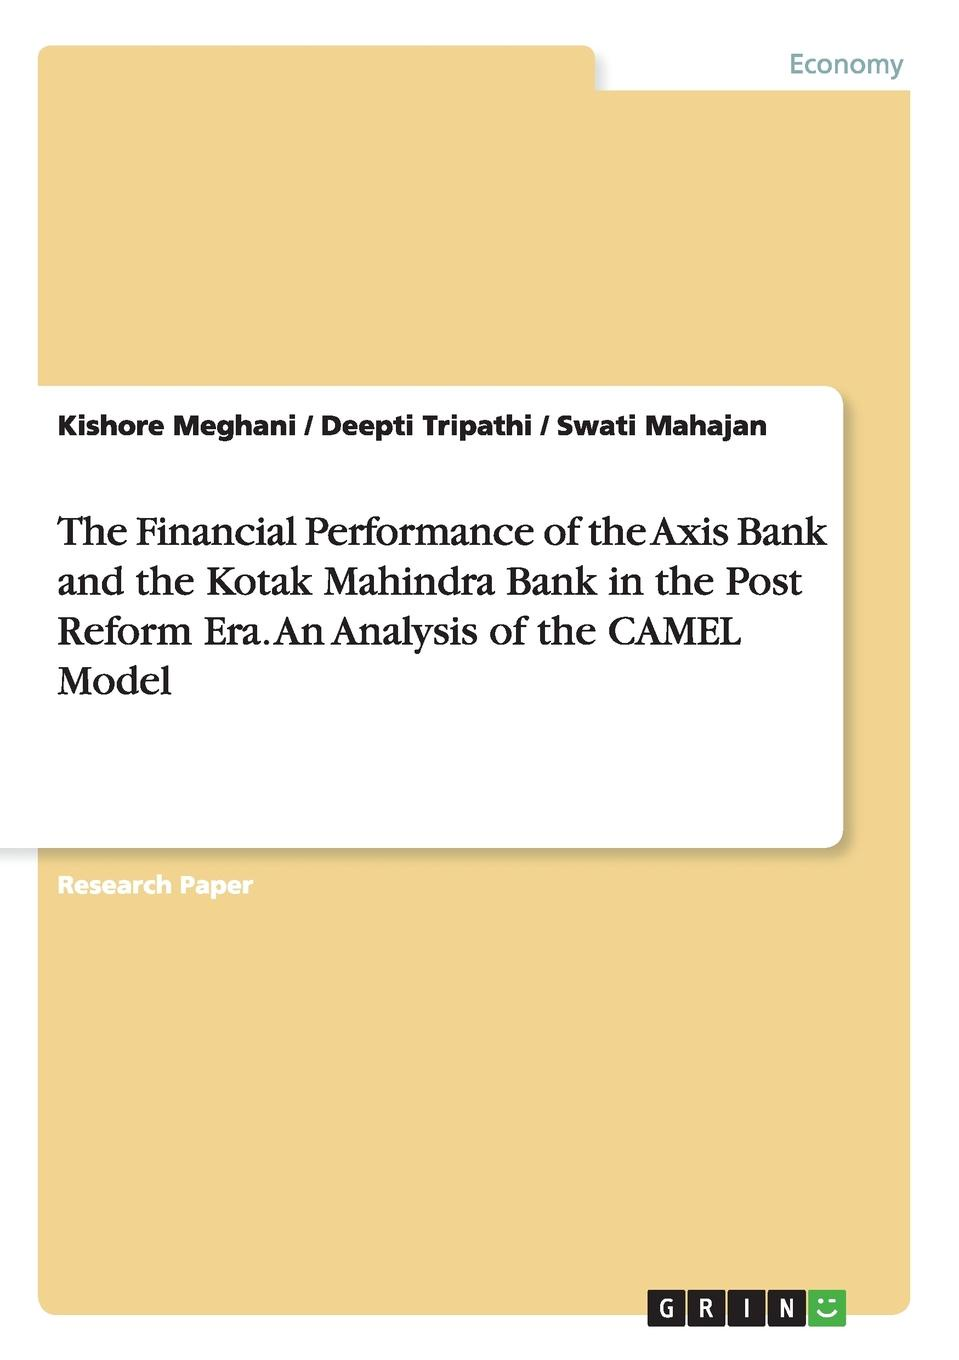 Kishore Meghani, Deepti Tripathi, Swati Mahajan The Financial Performance of the Axis Bank and the Kotak Mahindra Bank in the Post Reform Era. An Analysis of the CAMEL Model [out of stock] wantai cnc nema 23 stepper motor 57bygh603 1a 290oz in 3 axis driver board tb6560 cut laser mill engraver kit